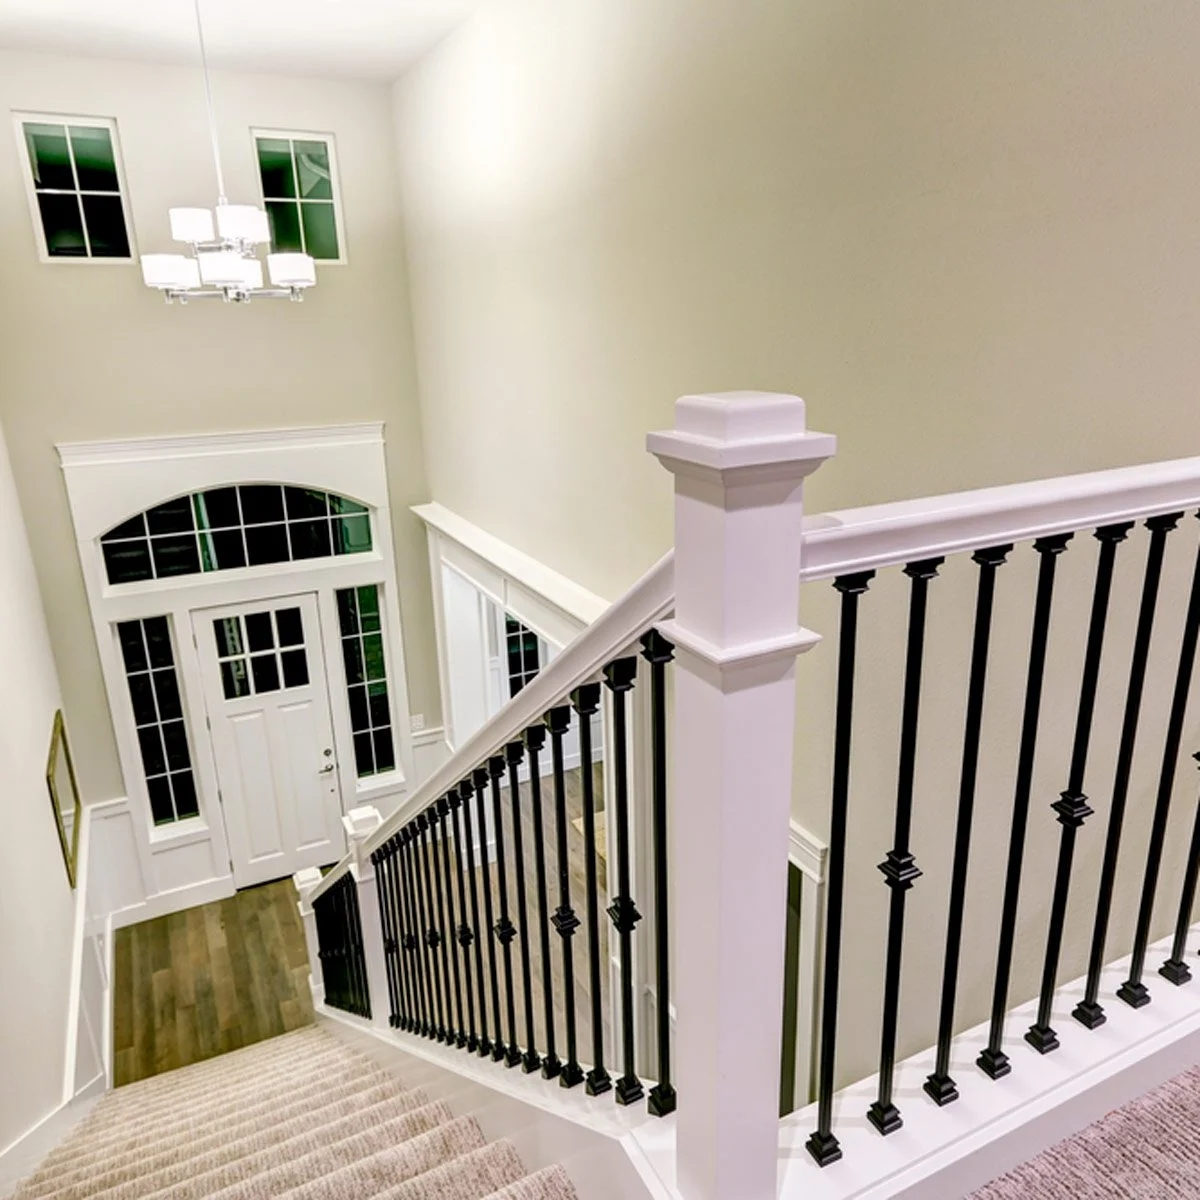 10 Ways To Freshen Up Outdated Banisters Family Handyman | Wood Handrail With Iron Balusters | Ash Gray | Ole Iron | Upstairs | Wrought Iron | Low Profile